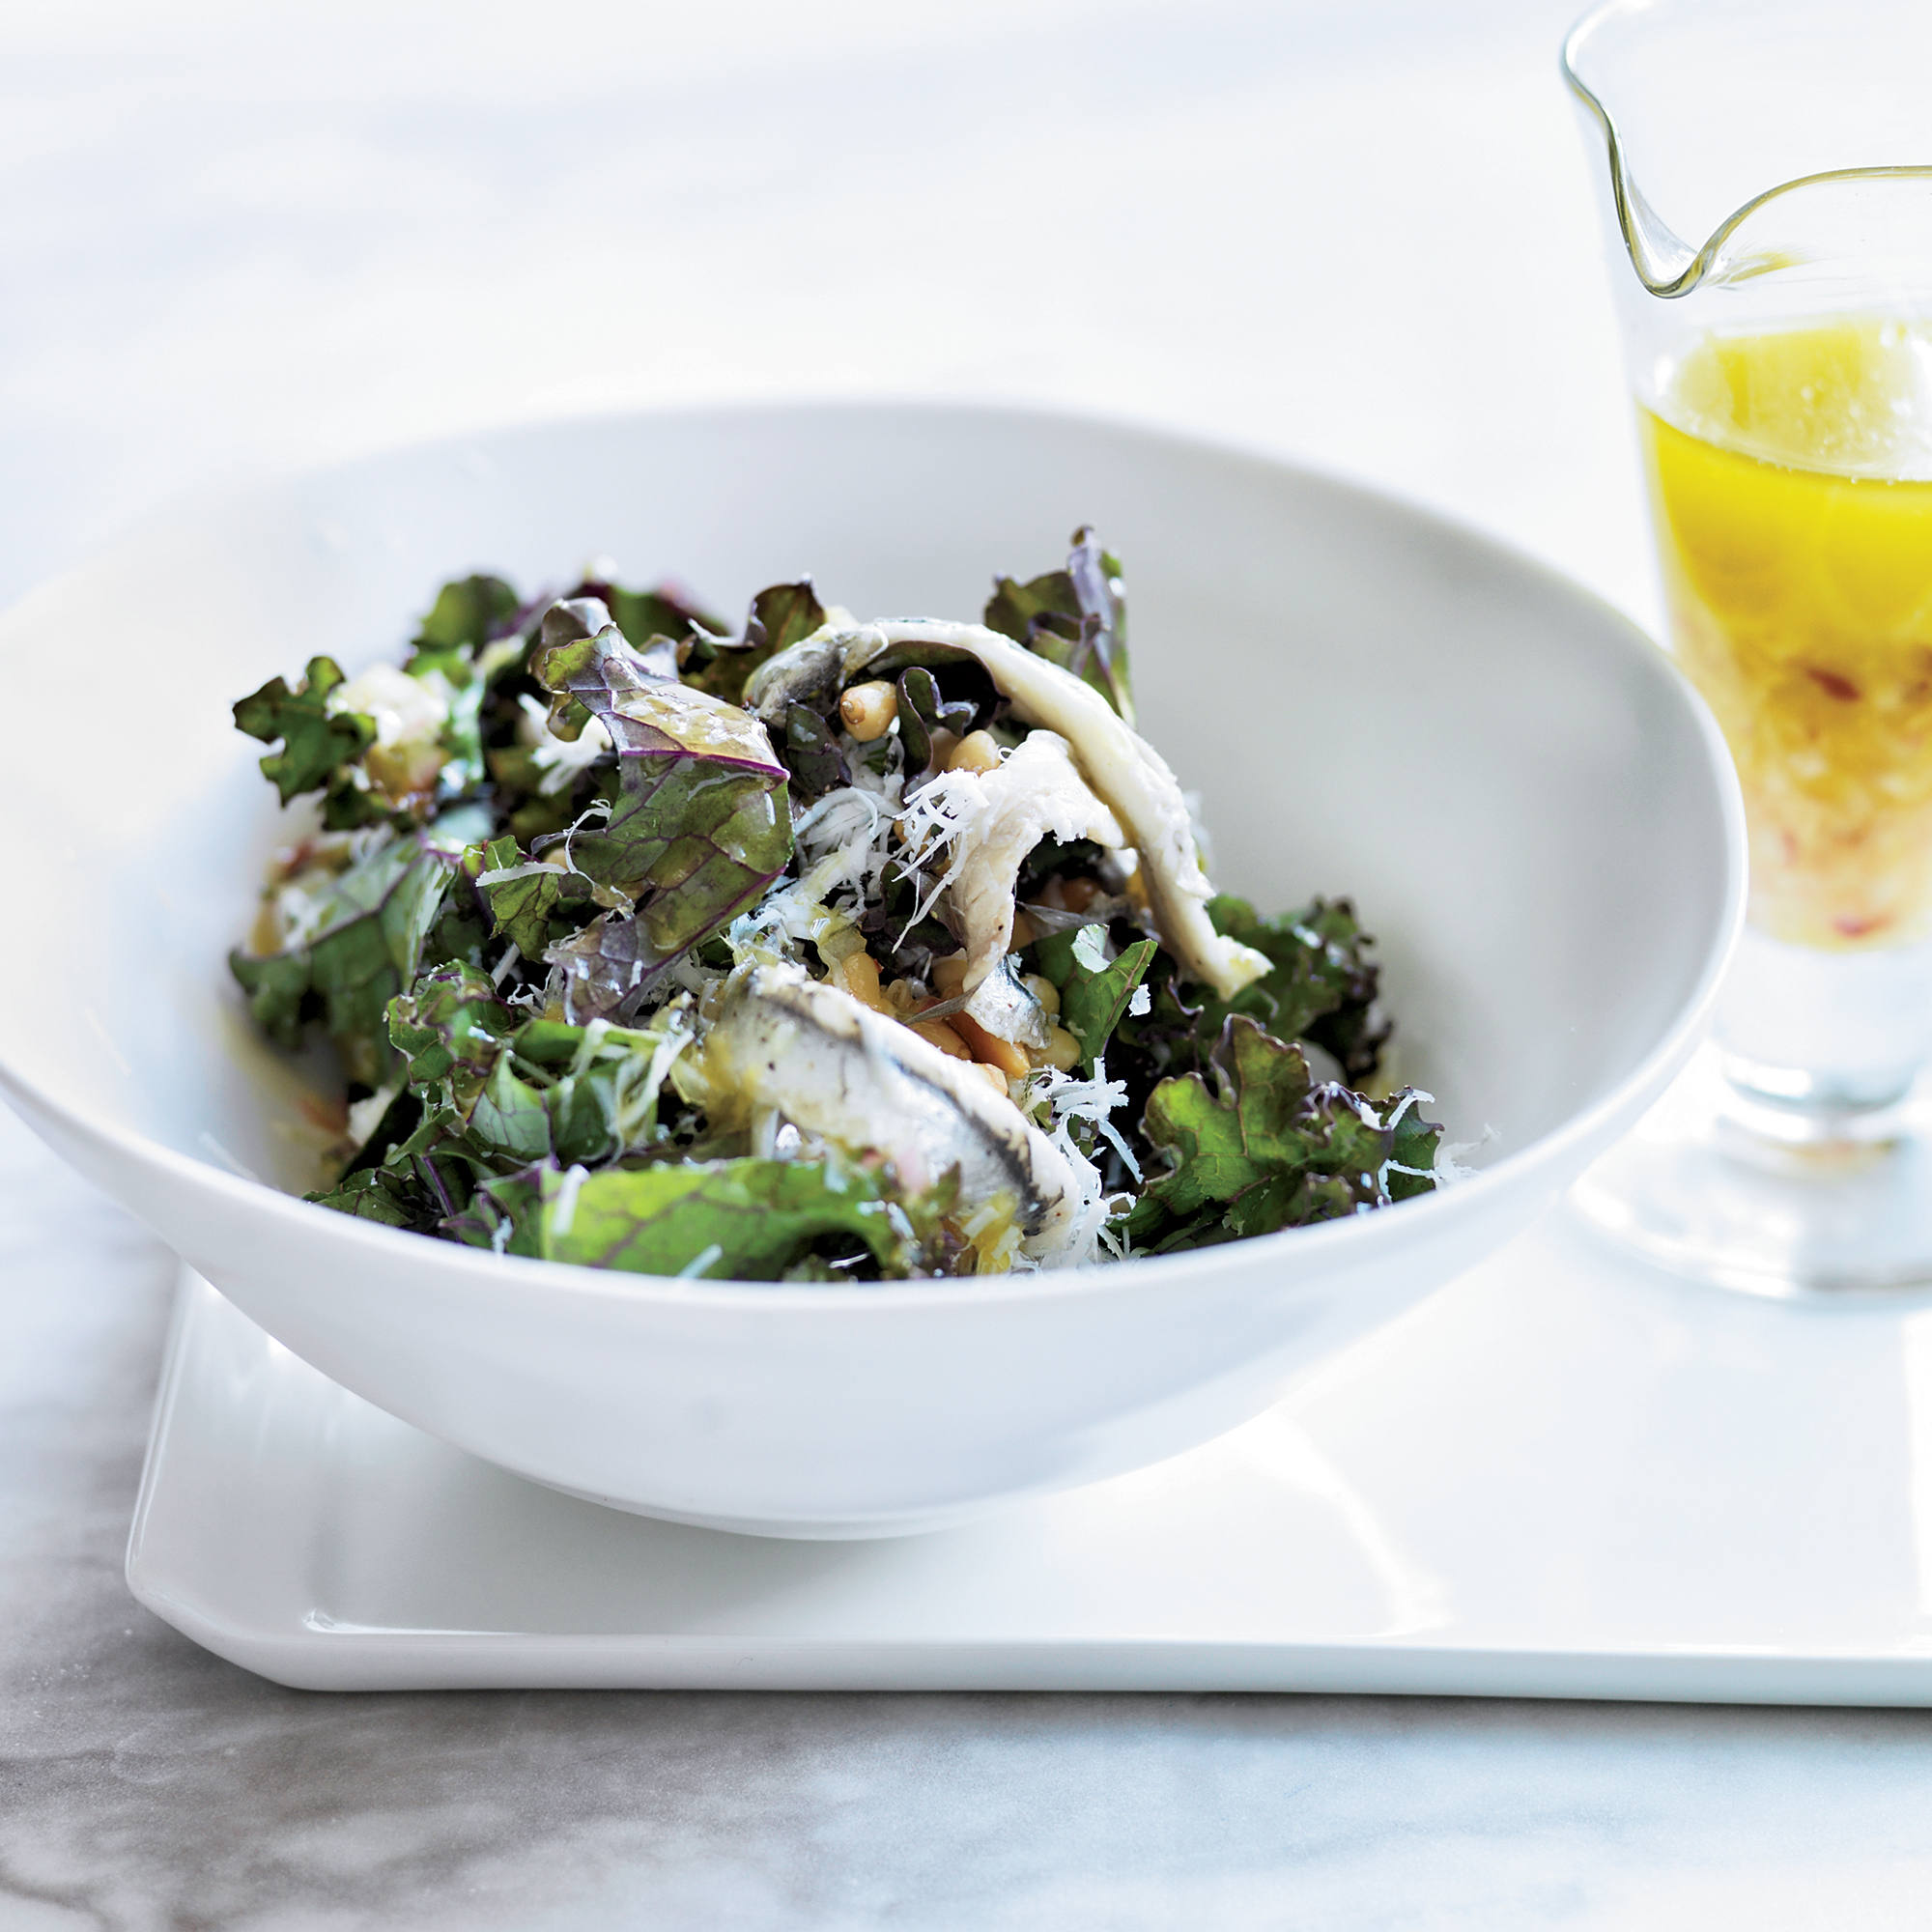 Kale Salad with Ricotta Salata, Pine Nuts & Anchovies